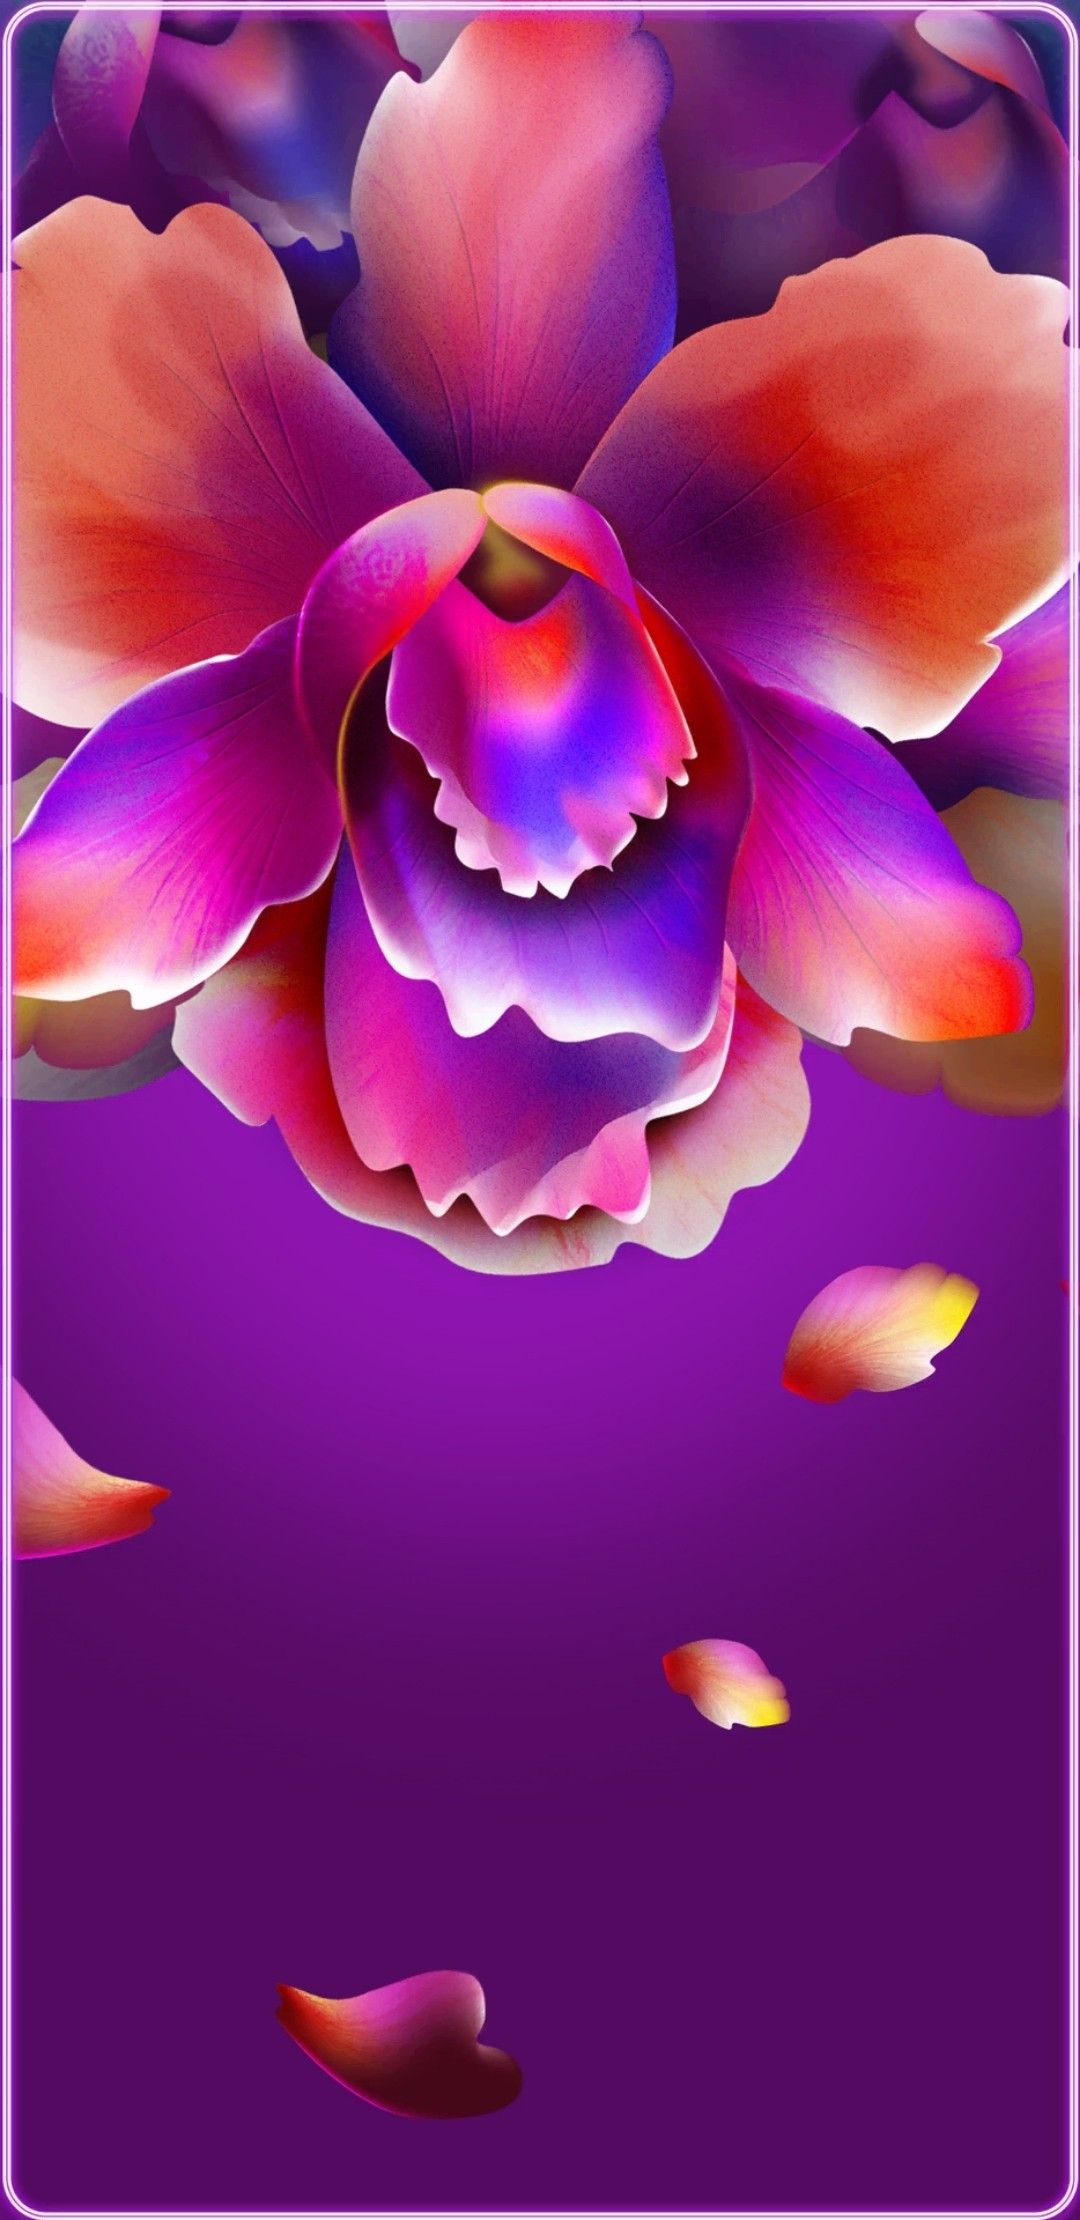 Good Download Lock Screen Iphone Unicorn 2020 by Uploaded by user